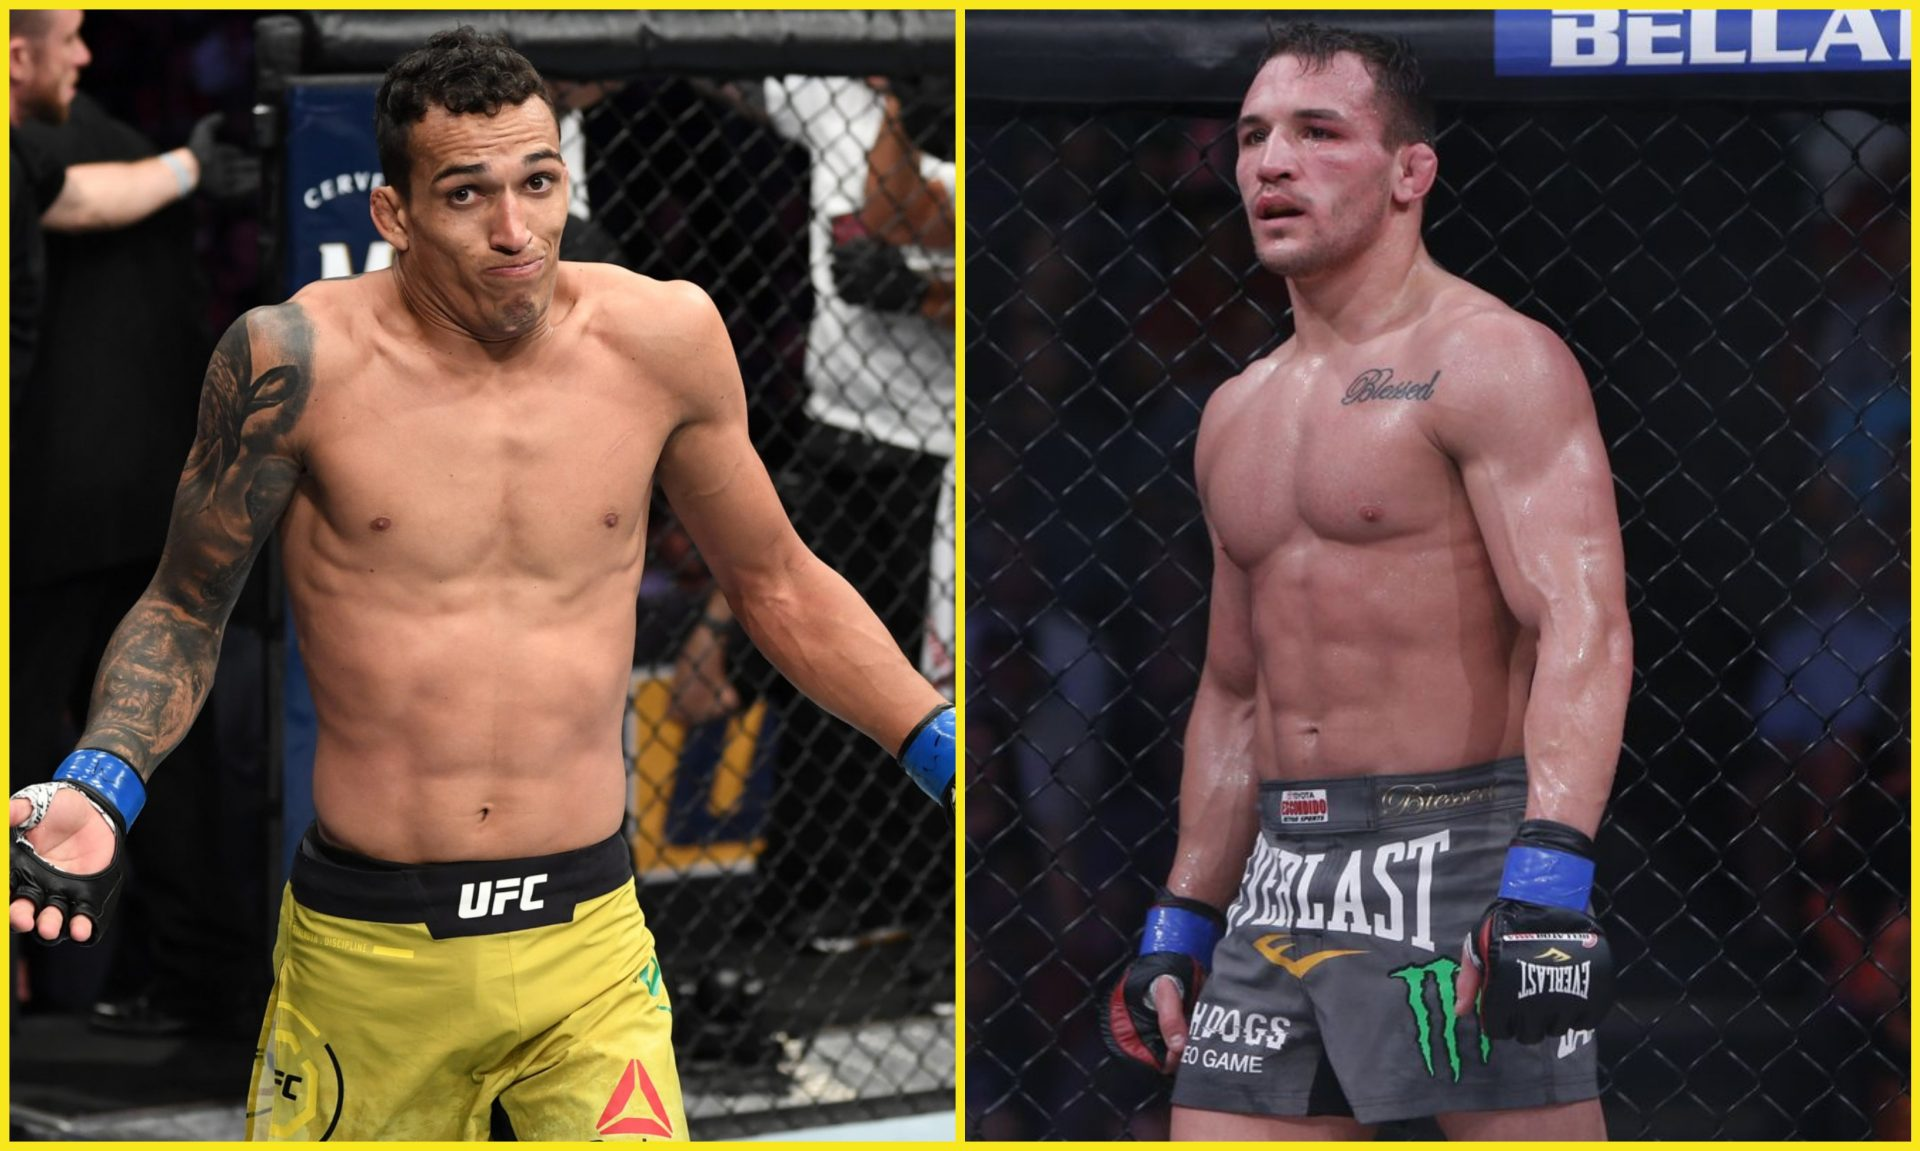 Charles Oliveira turned down fight against Michael Chandler, says Dana White - Oliveira